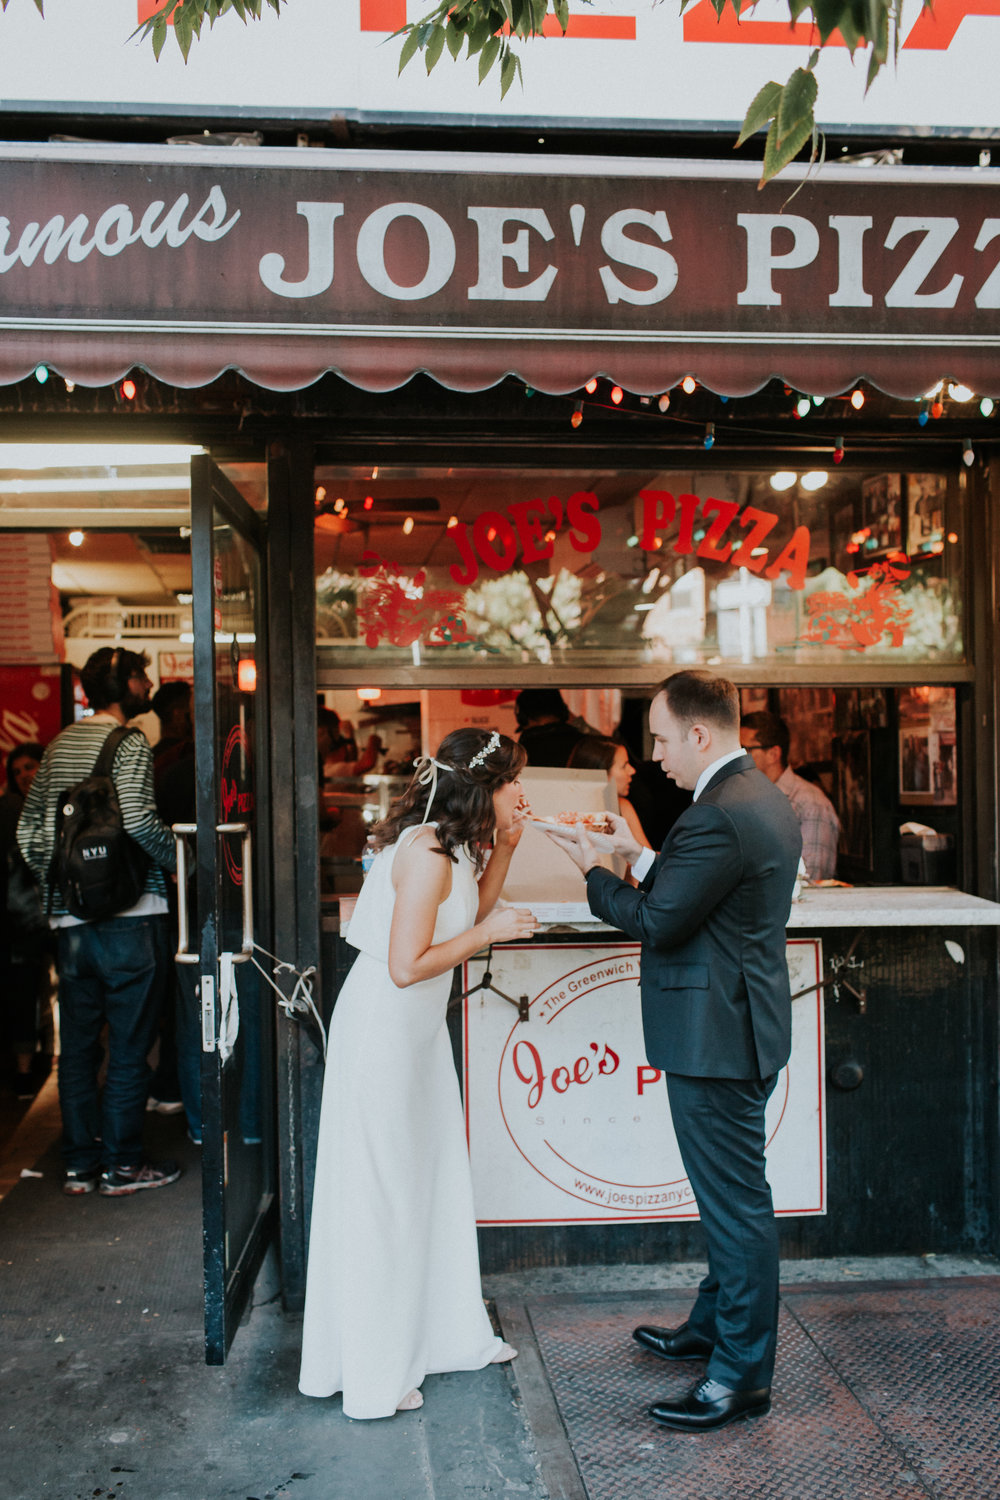 New-York-Documentary-Wedding-Photography-Best-Of-2017-by-Elvira-Kalviste-Photography-113.jpg